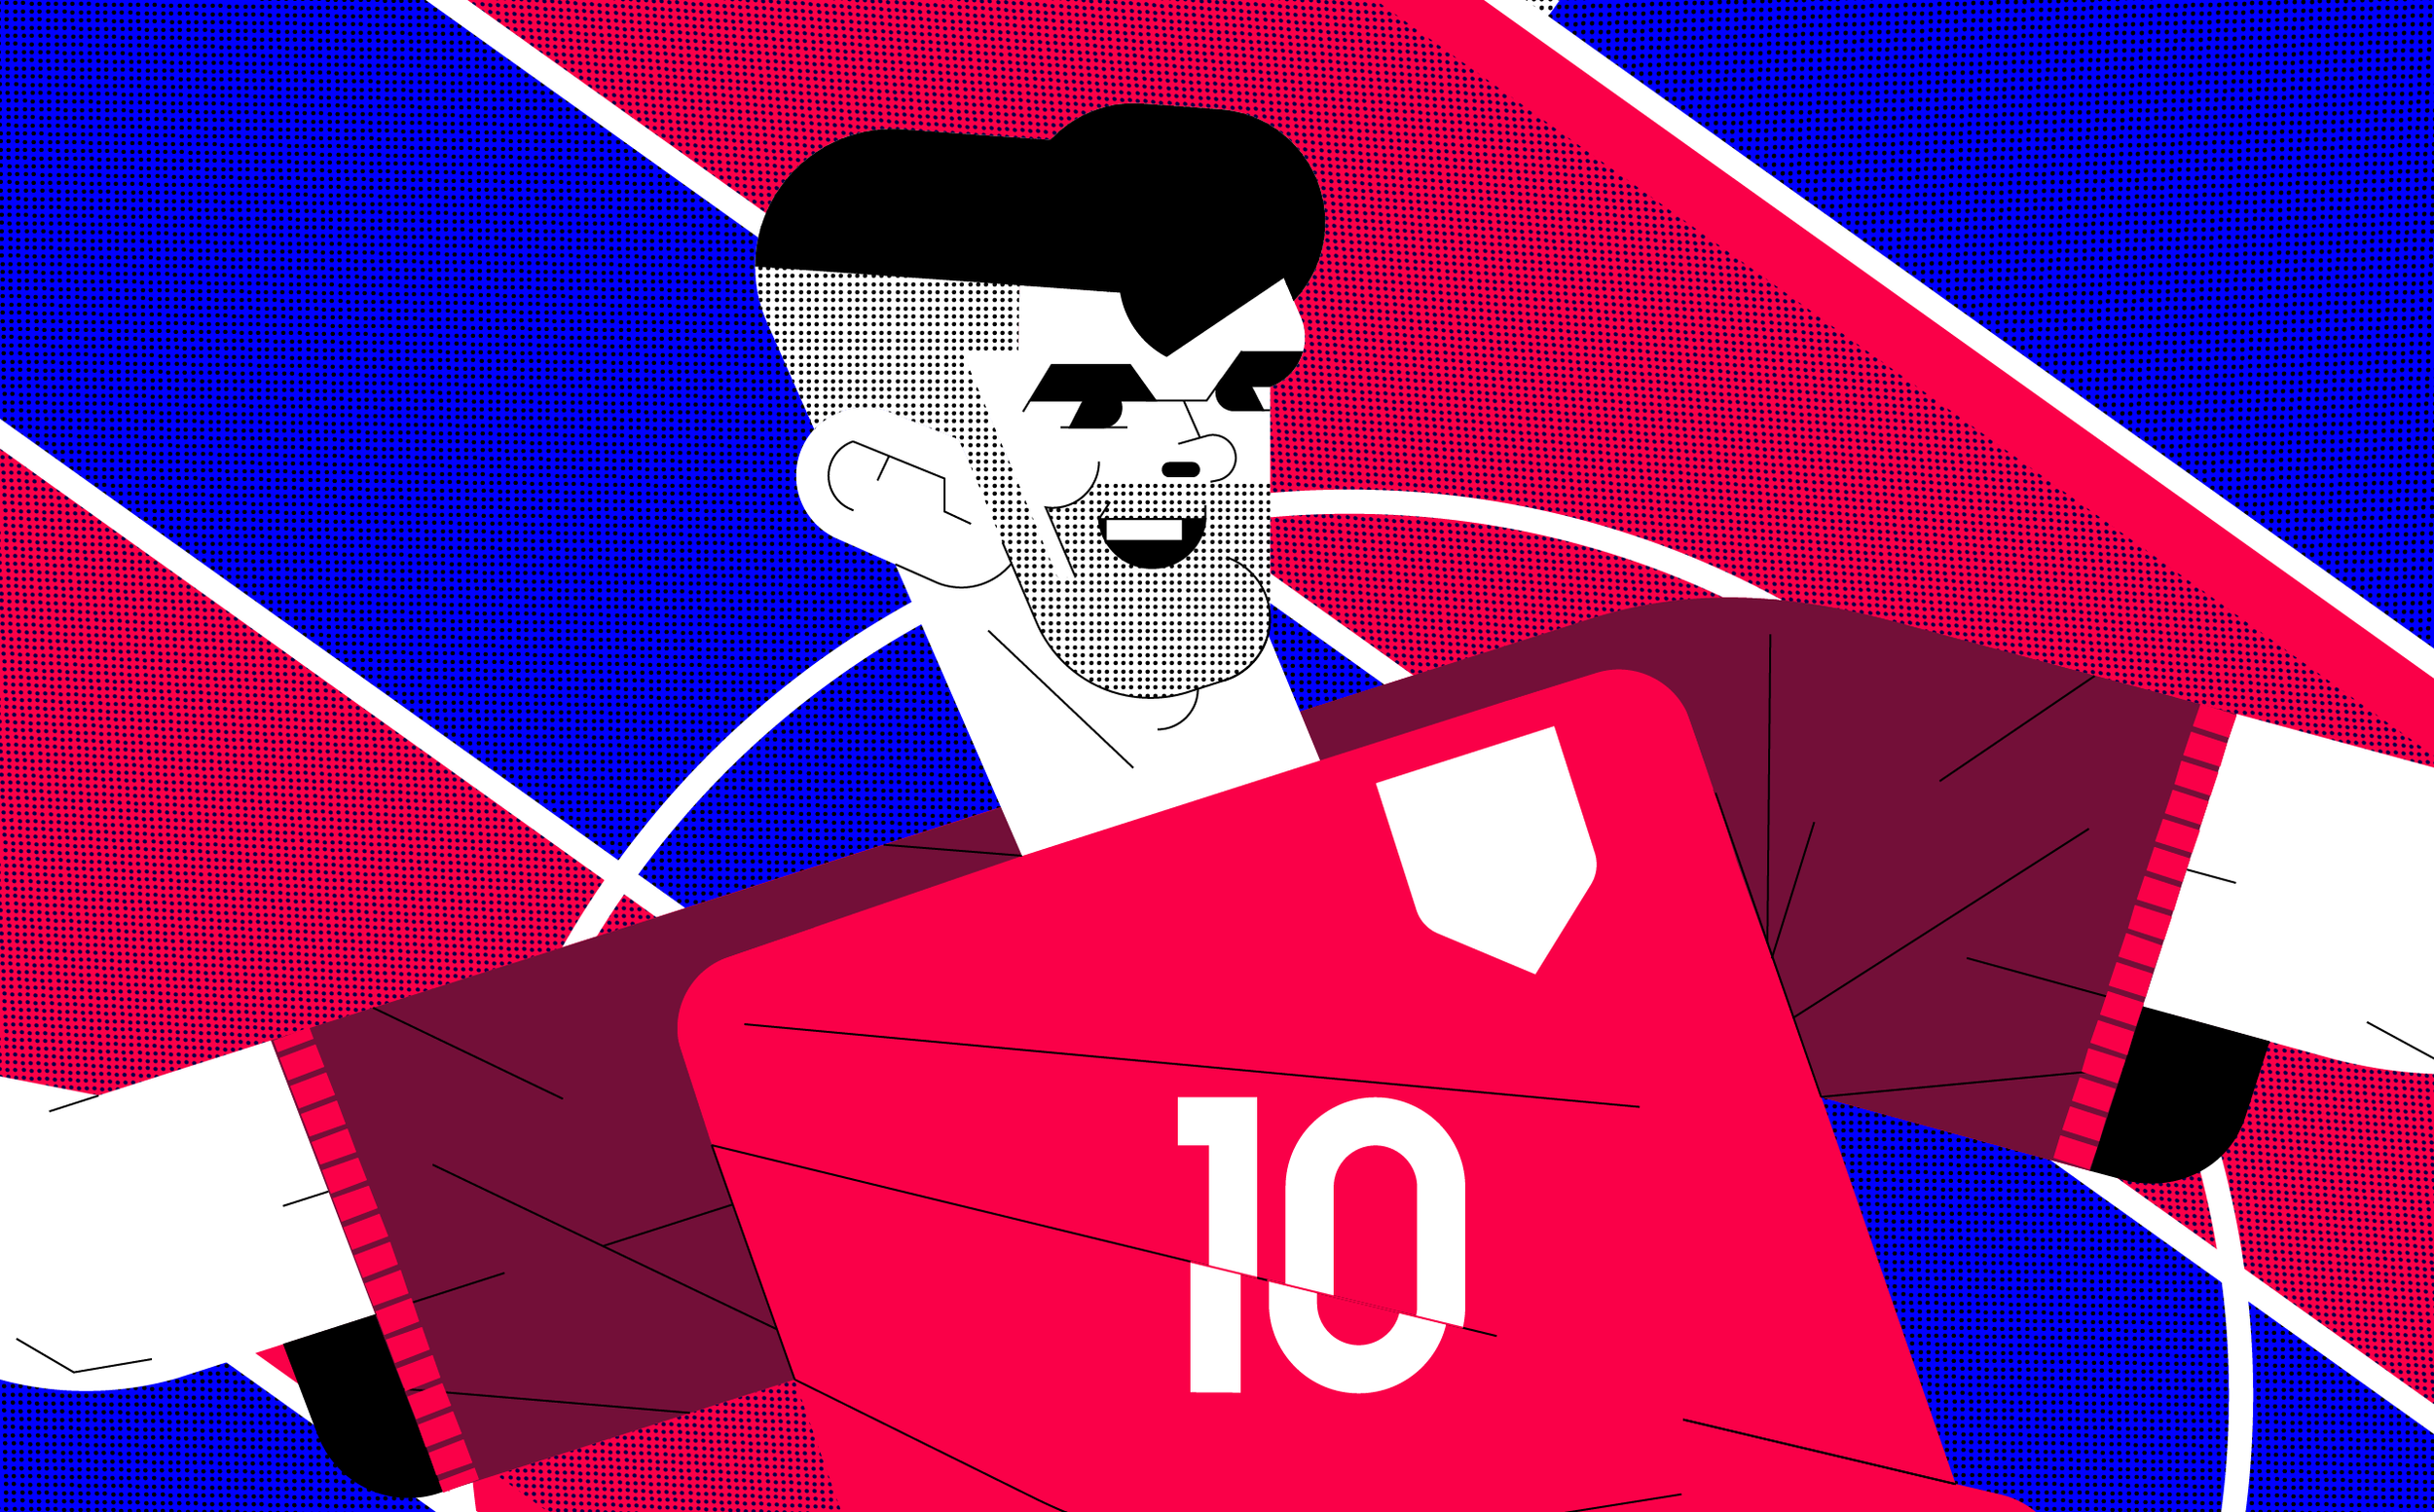 Football Players_Pulisic_USMNT_final close up.png